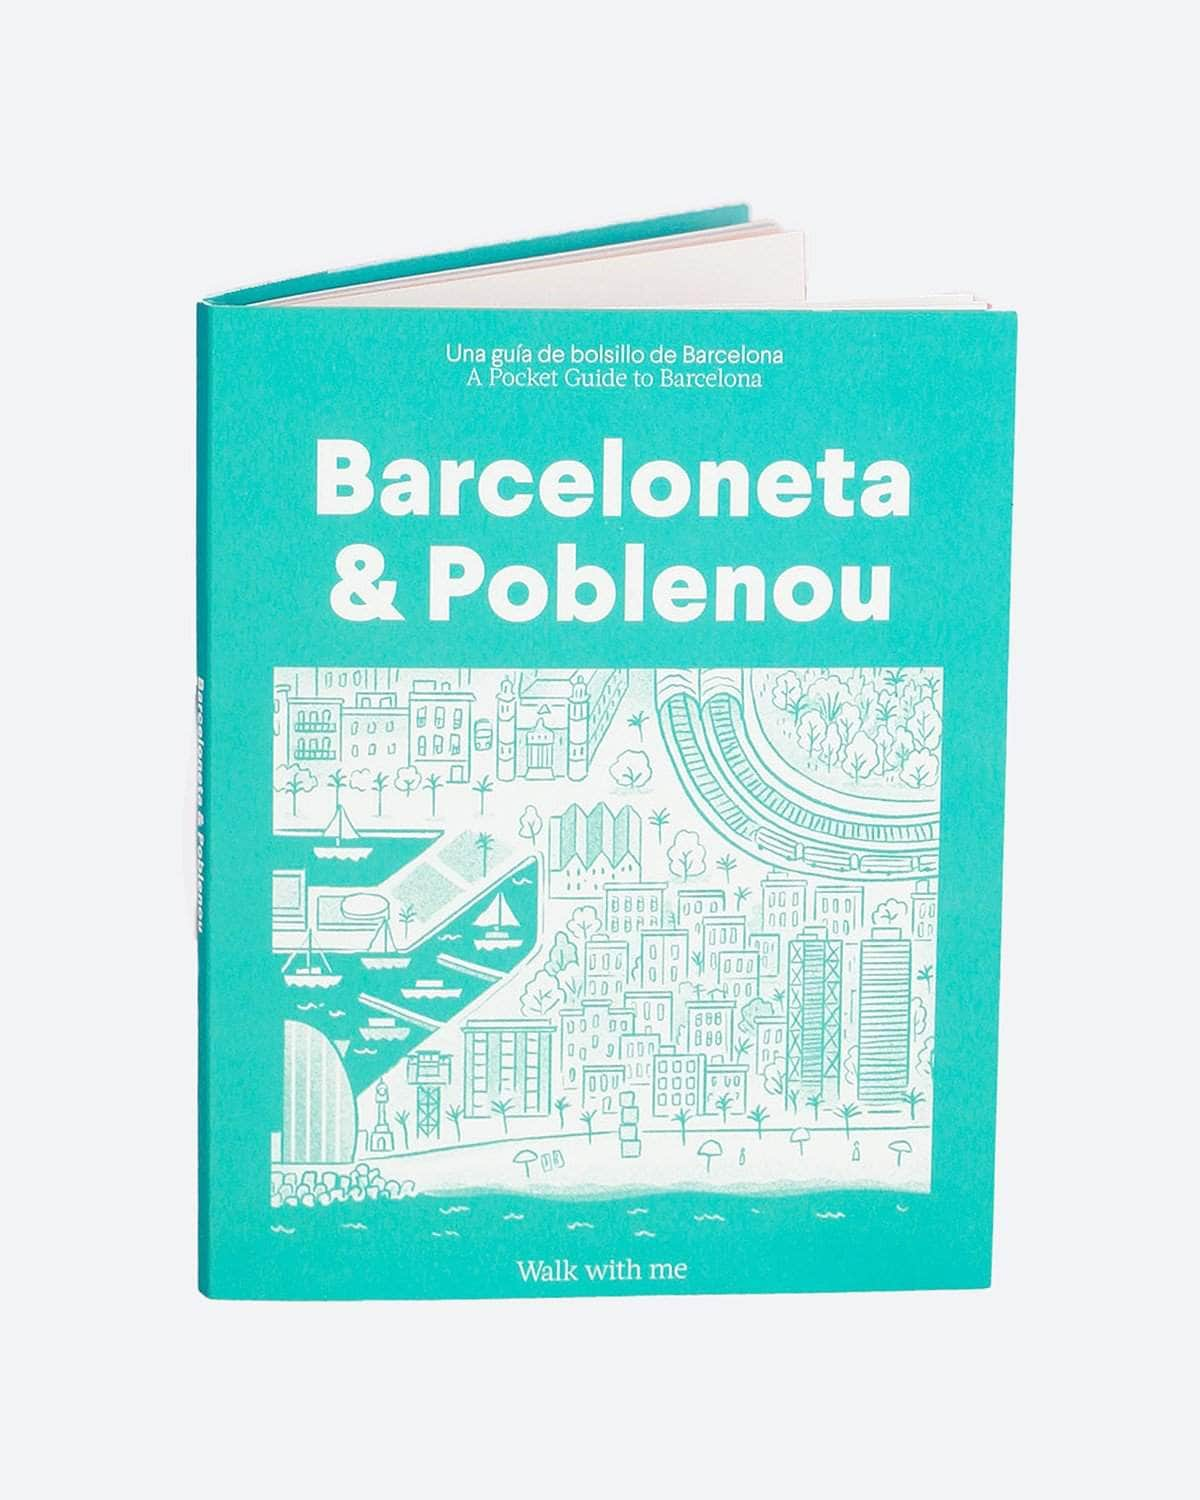 Barceloneta & Poblenou - Pocket Guide